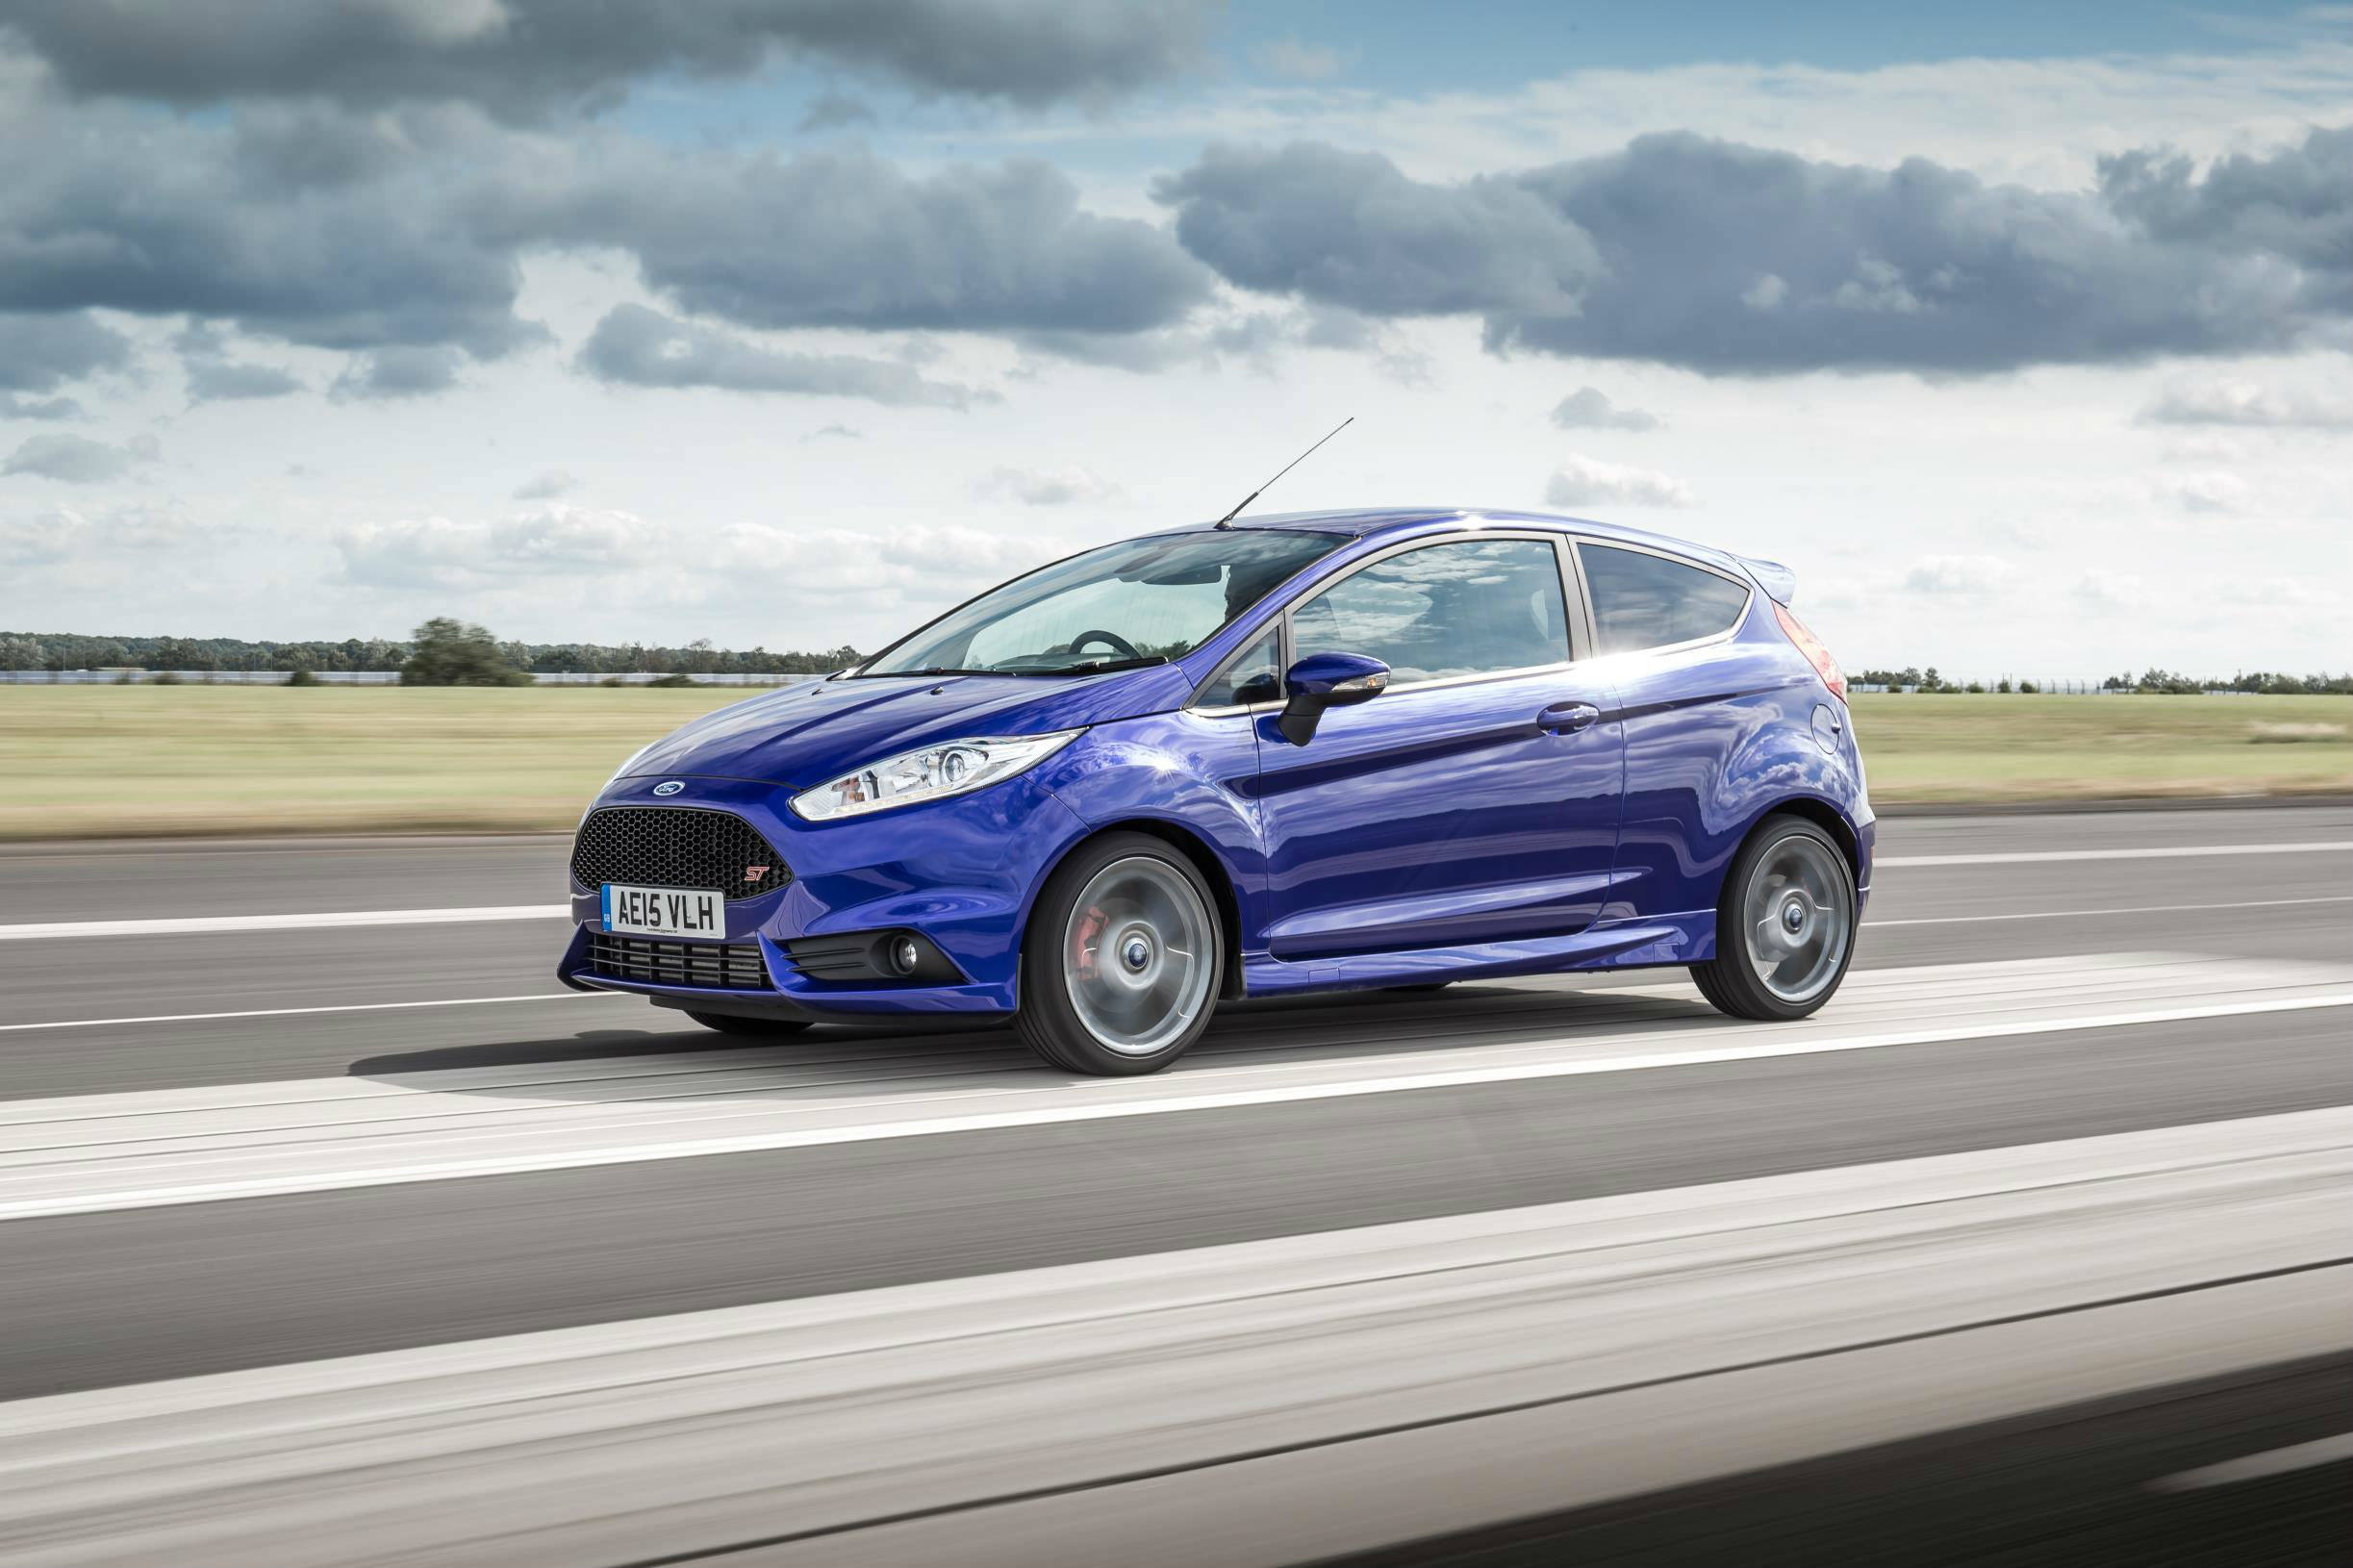 image of a blue ford fiesta st car exterior